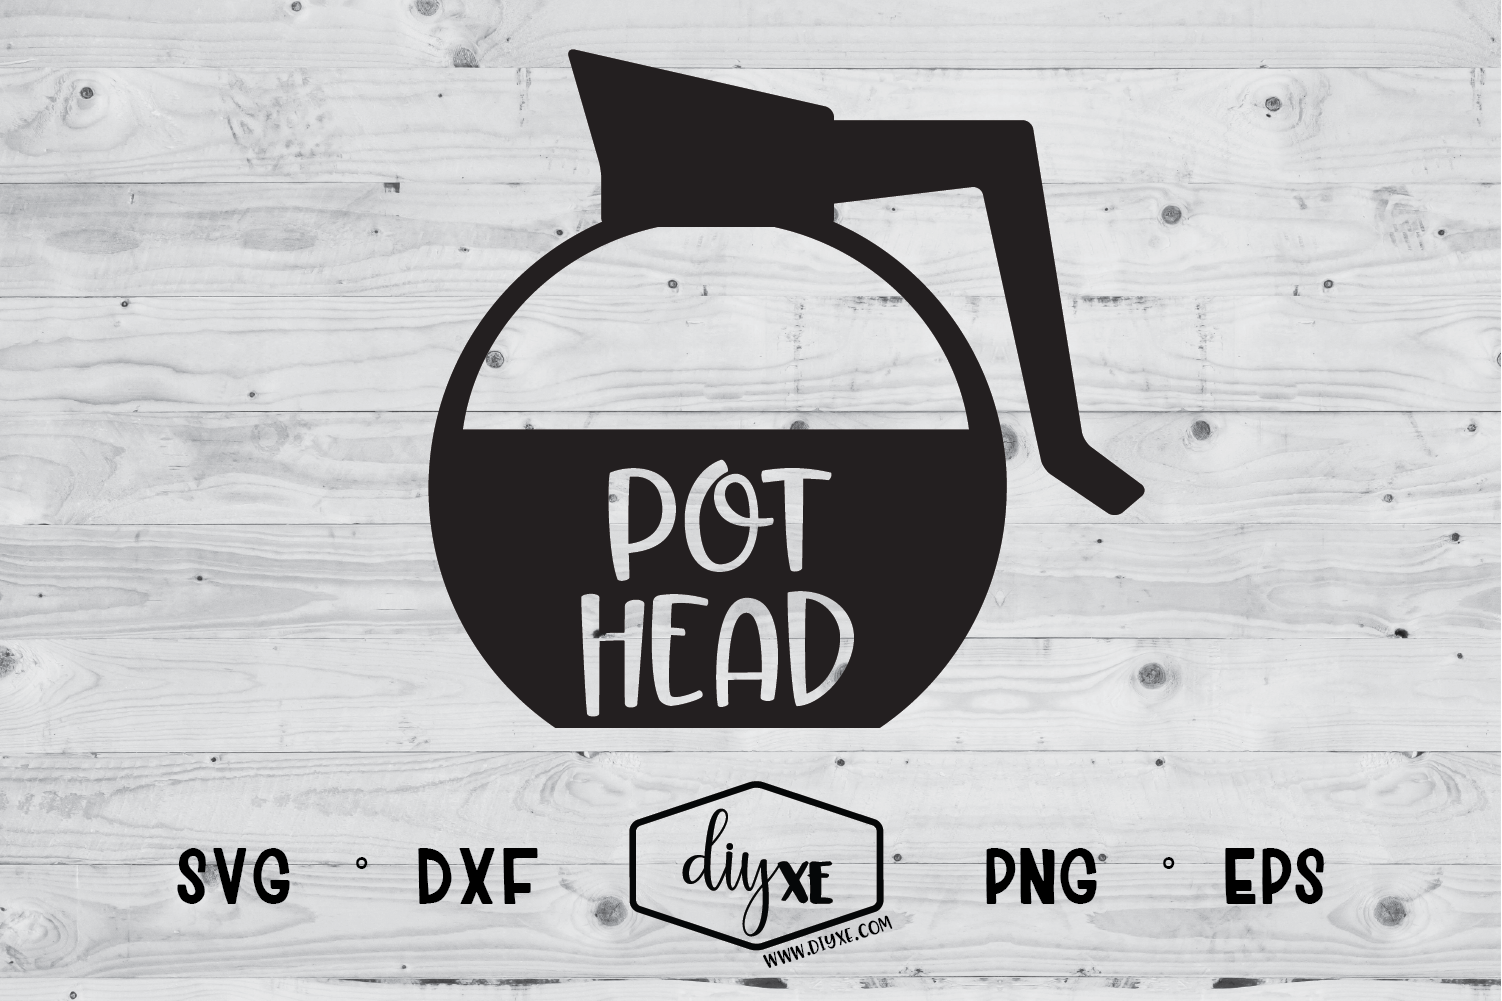 Download Free Pot Head Graphic By Sheryl Holst Creative Fabrica for Cricut Explore, Silhouette and other cutting machines.